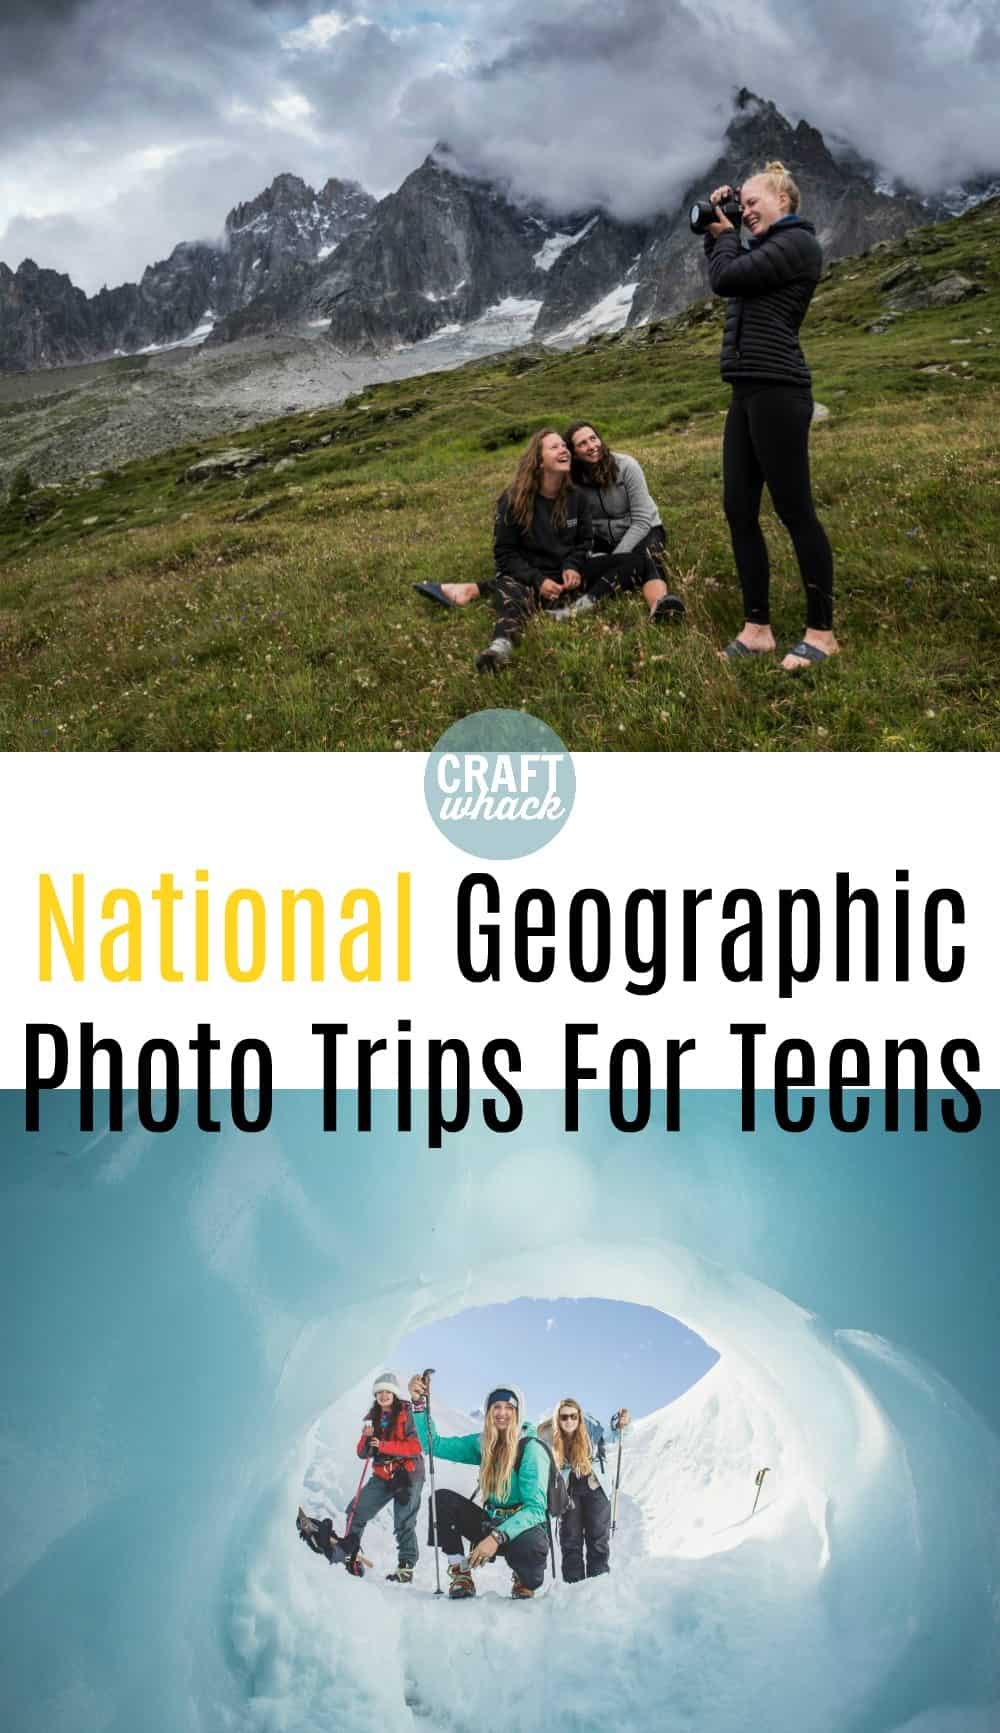 teen photographers on National Geographic expeditions